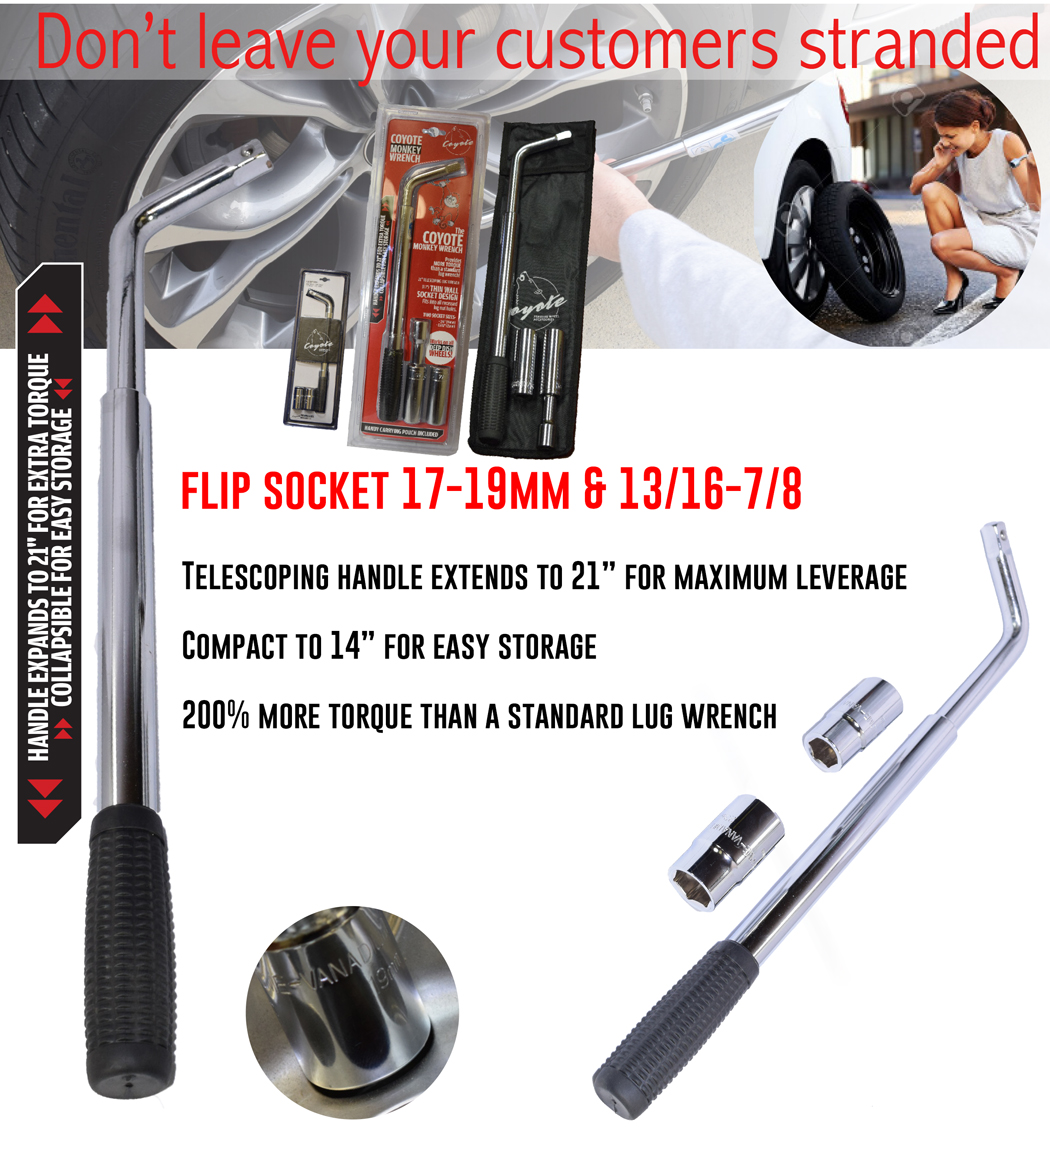 flip socket with wrench: 17-19mm & 13/16 - 7/8